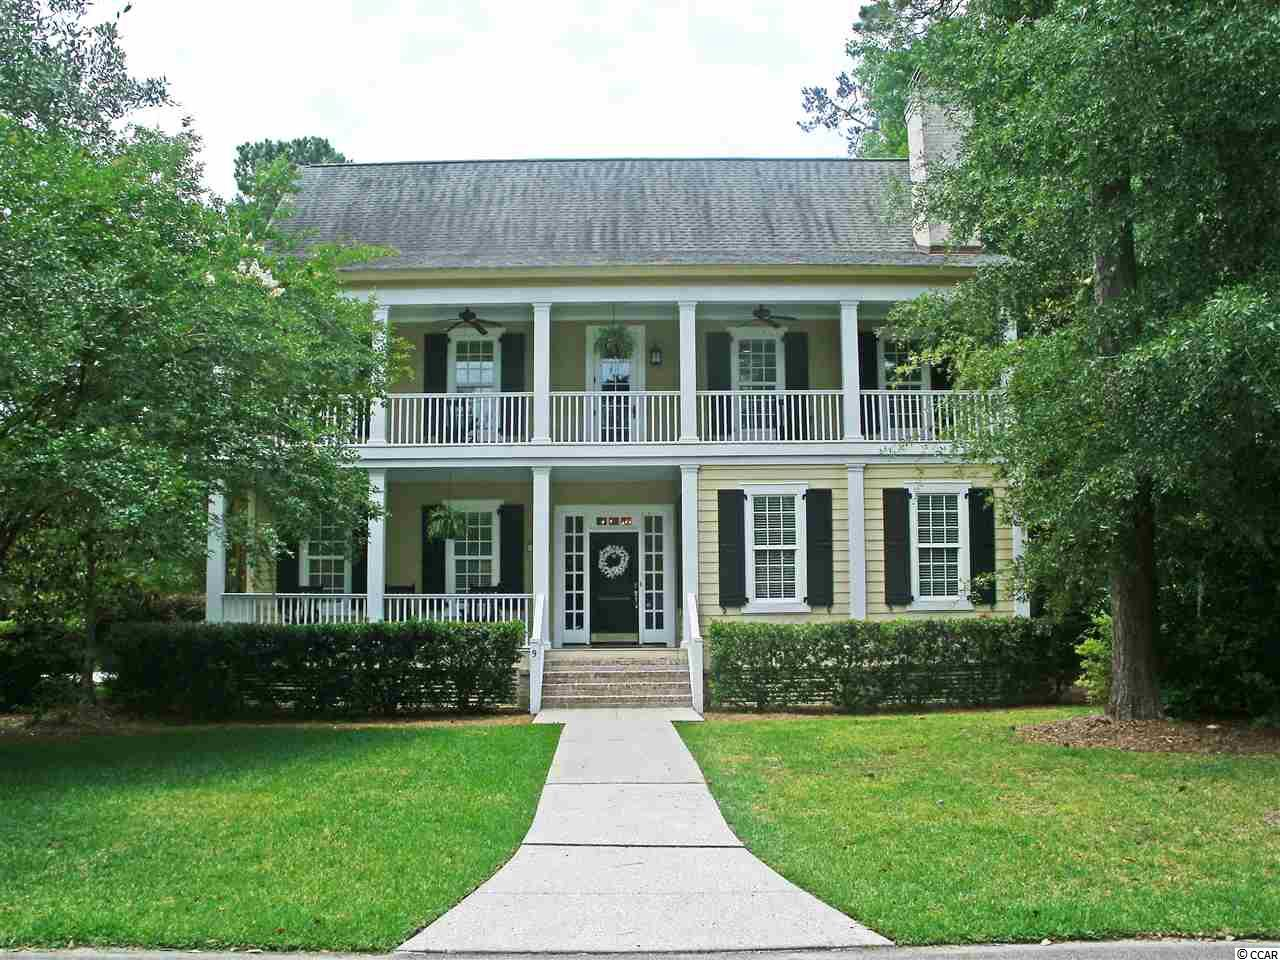 Gracious Lowcountry home offers private, sophisticated living in historic Litchfield Plantation. Classically colonnaded two-story home with double front porches features powder room, high ceilings, beautiful wood floors, gas fireplace, crown molding, custom built-ins and additional screened-in porch. Gourmet kitchen boasts stainless steel appliances, granite counters, walk-in pantry and abundant light. Master suite is on the main floor. Top floor has three bedrooms, one with an adjoining den, and three full baths. Attached two-car garage. The historic rice fields and magnificent ancient live oak forest preserved within Litchfield Plantation endow this gated community with enchantment and beauty. Homeowners also enjoy convenient access to the plantation marina, a pool with pool house overlooking the expansive rice fields as well as oceanfront beach house privileges with parking and bathroom facilities.